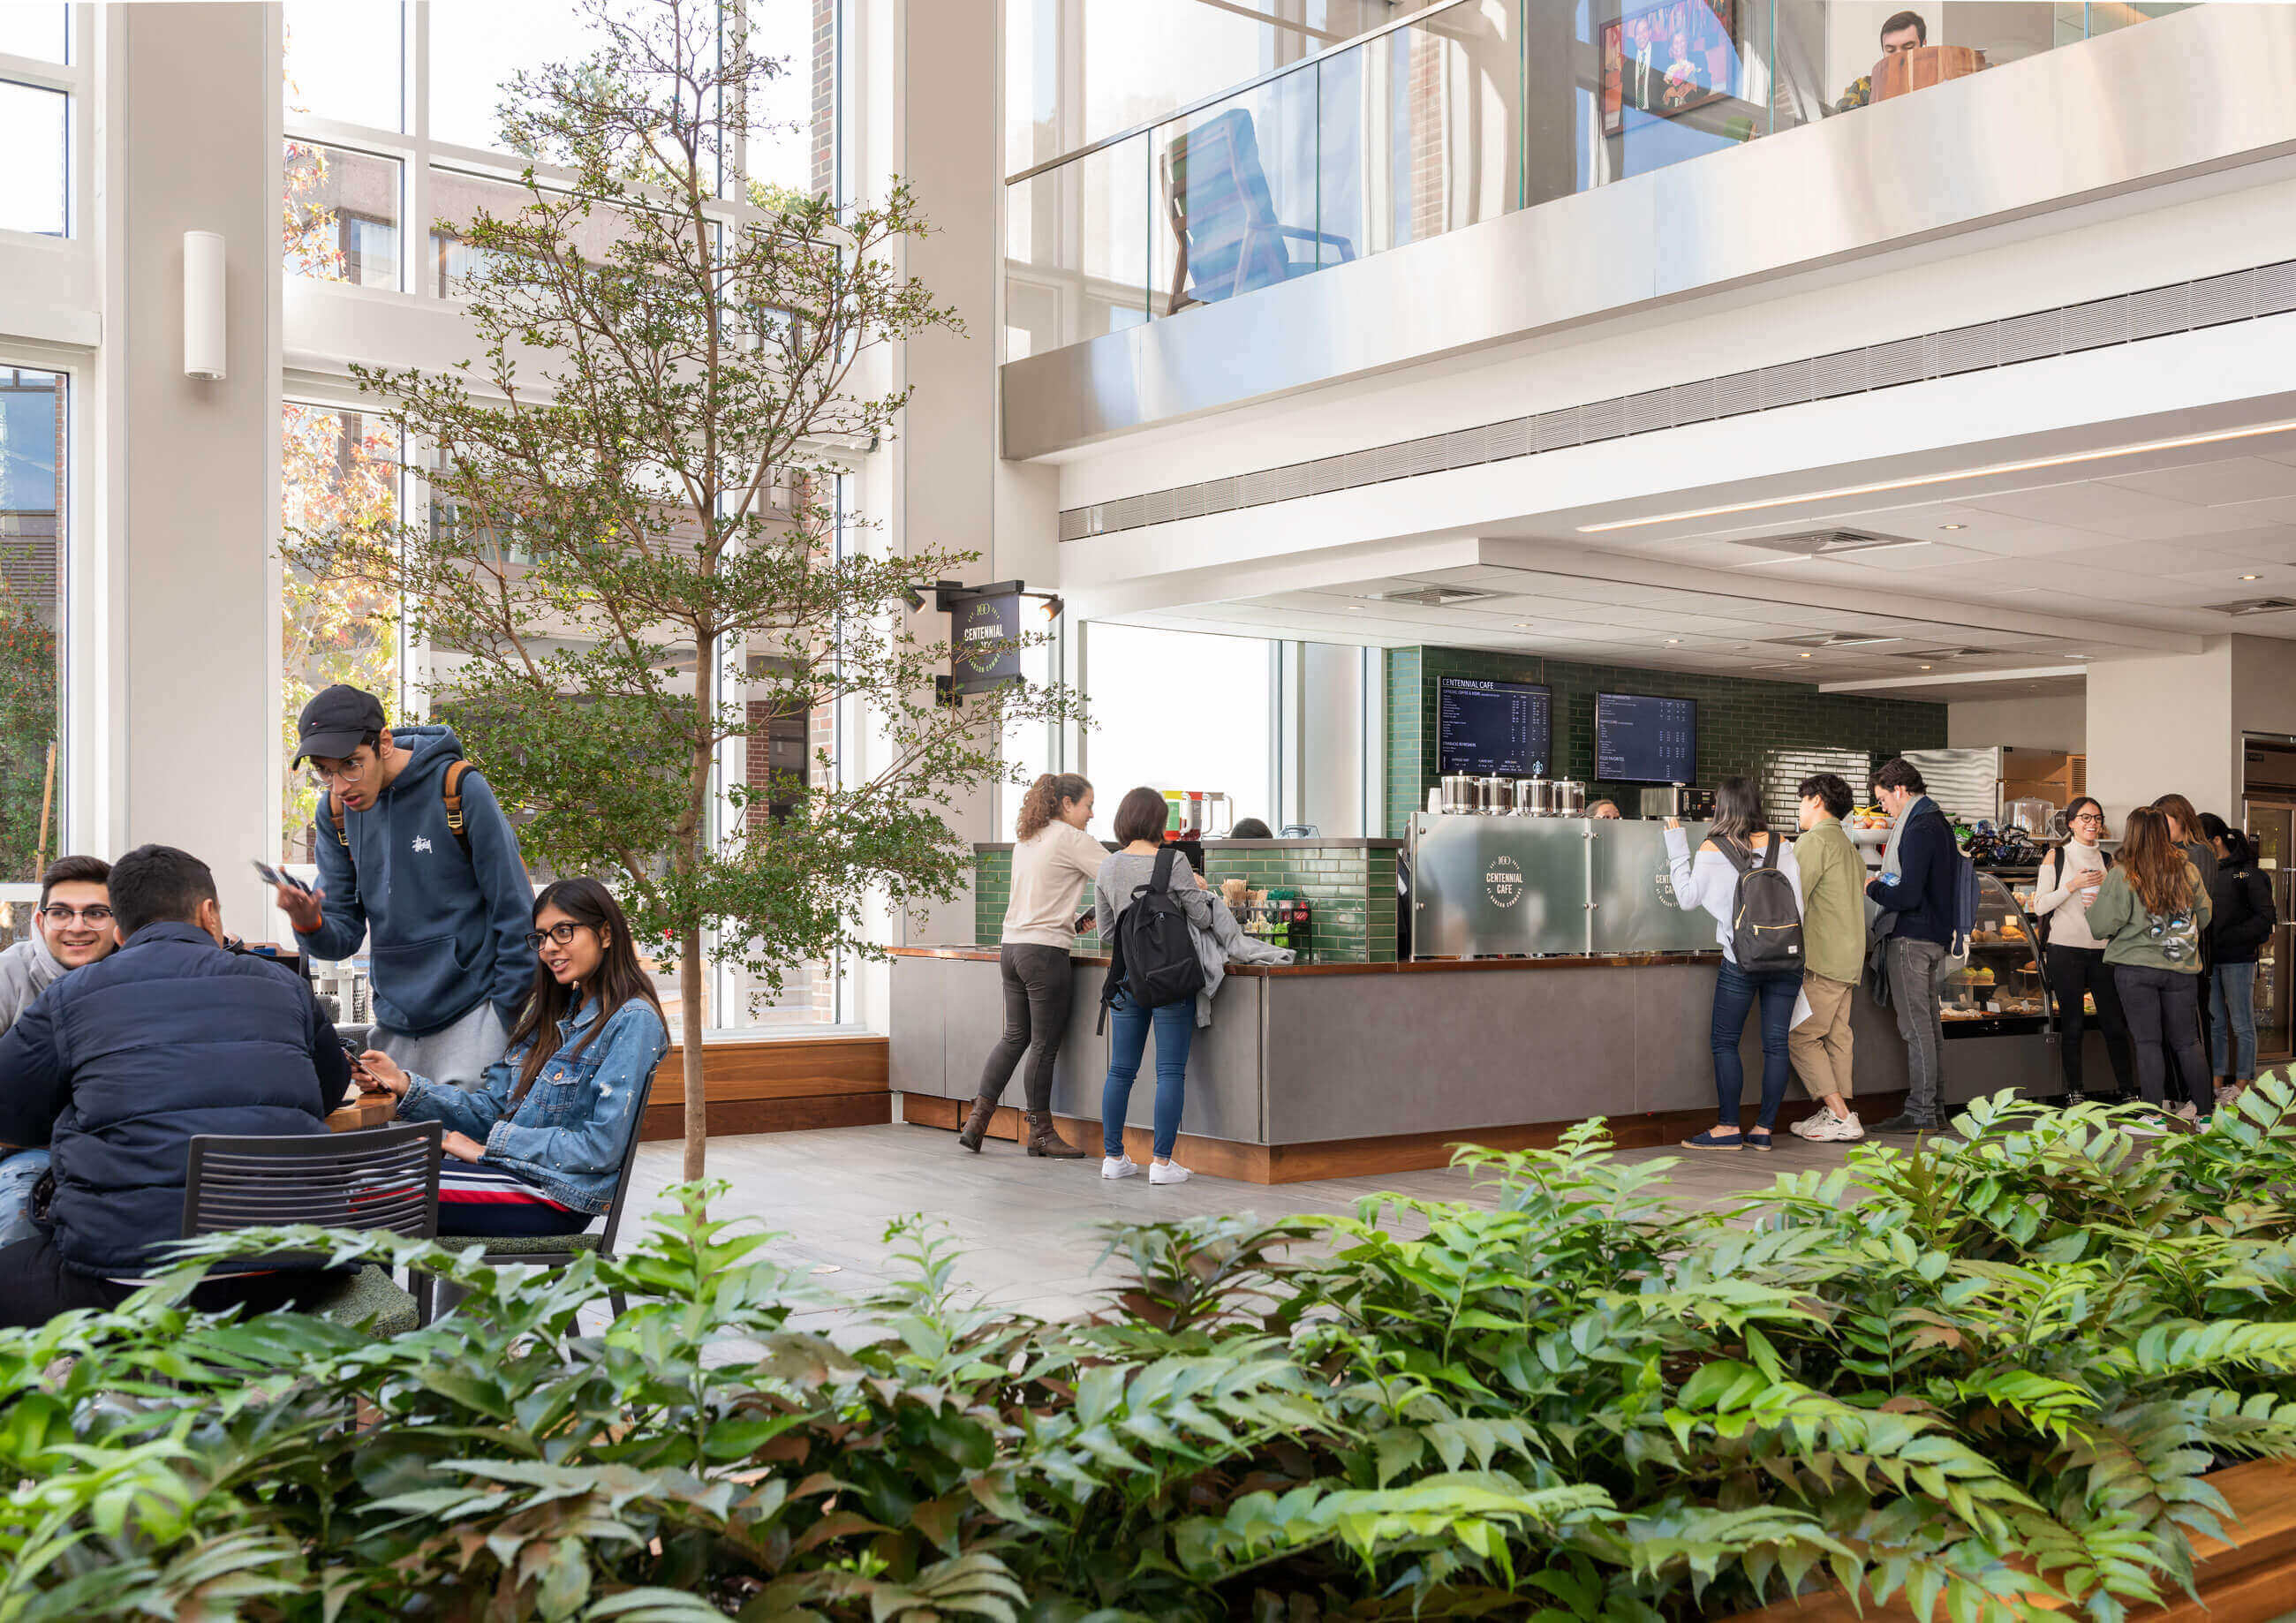 Students waiting in line at a cafe bar under the balcony, with indoor plantings in the foreground and a tree near the cafe counter.